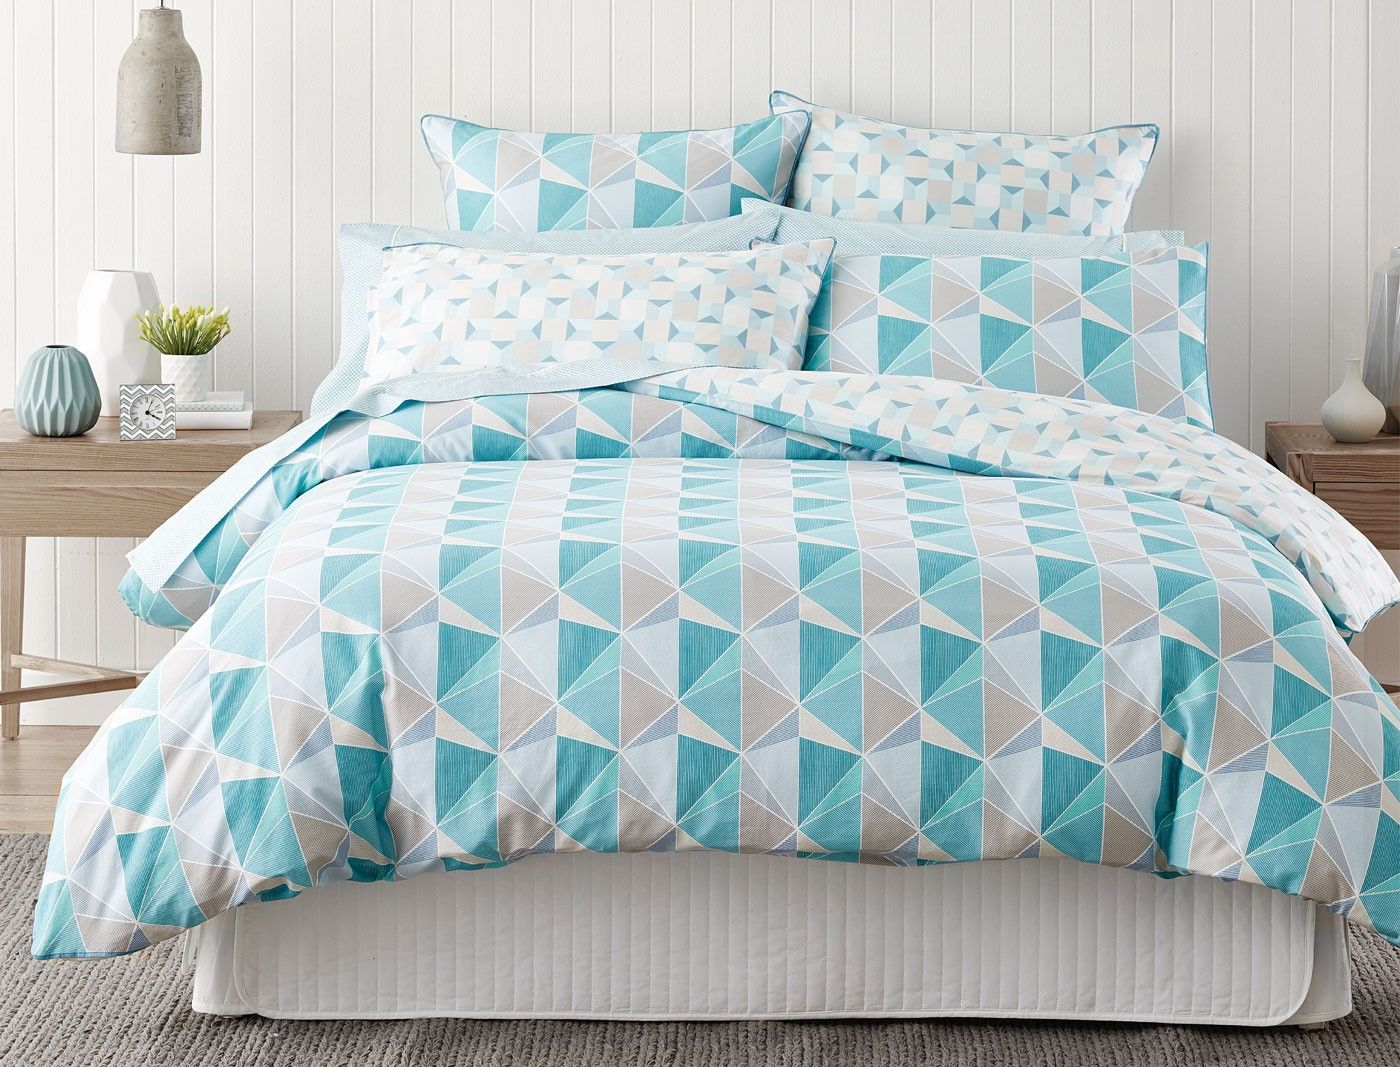 Shop Quilt Covers Bedroom Retreat Bedroom Inspo